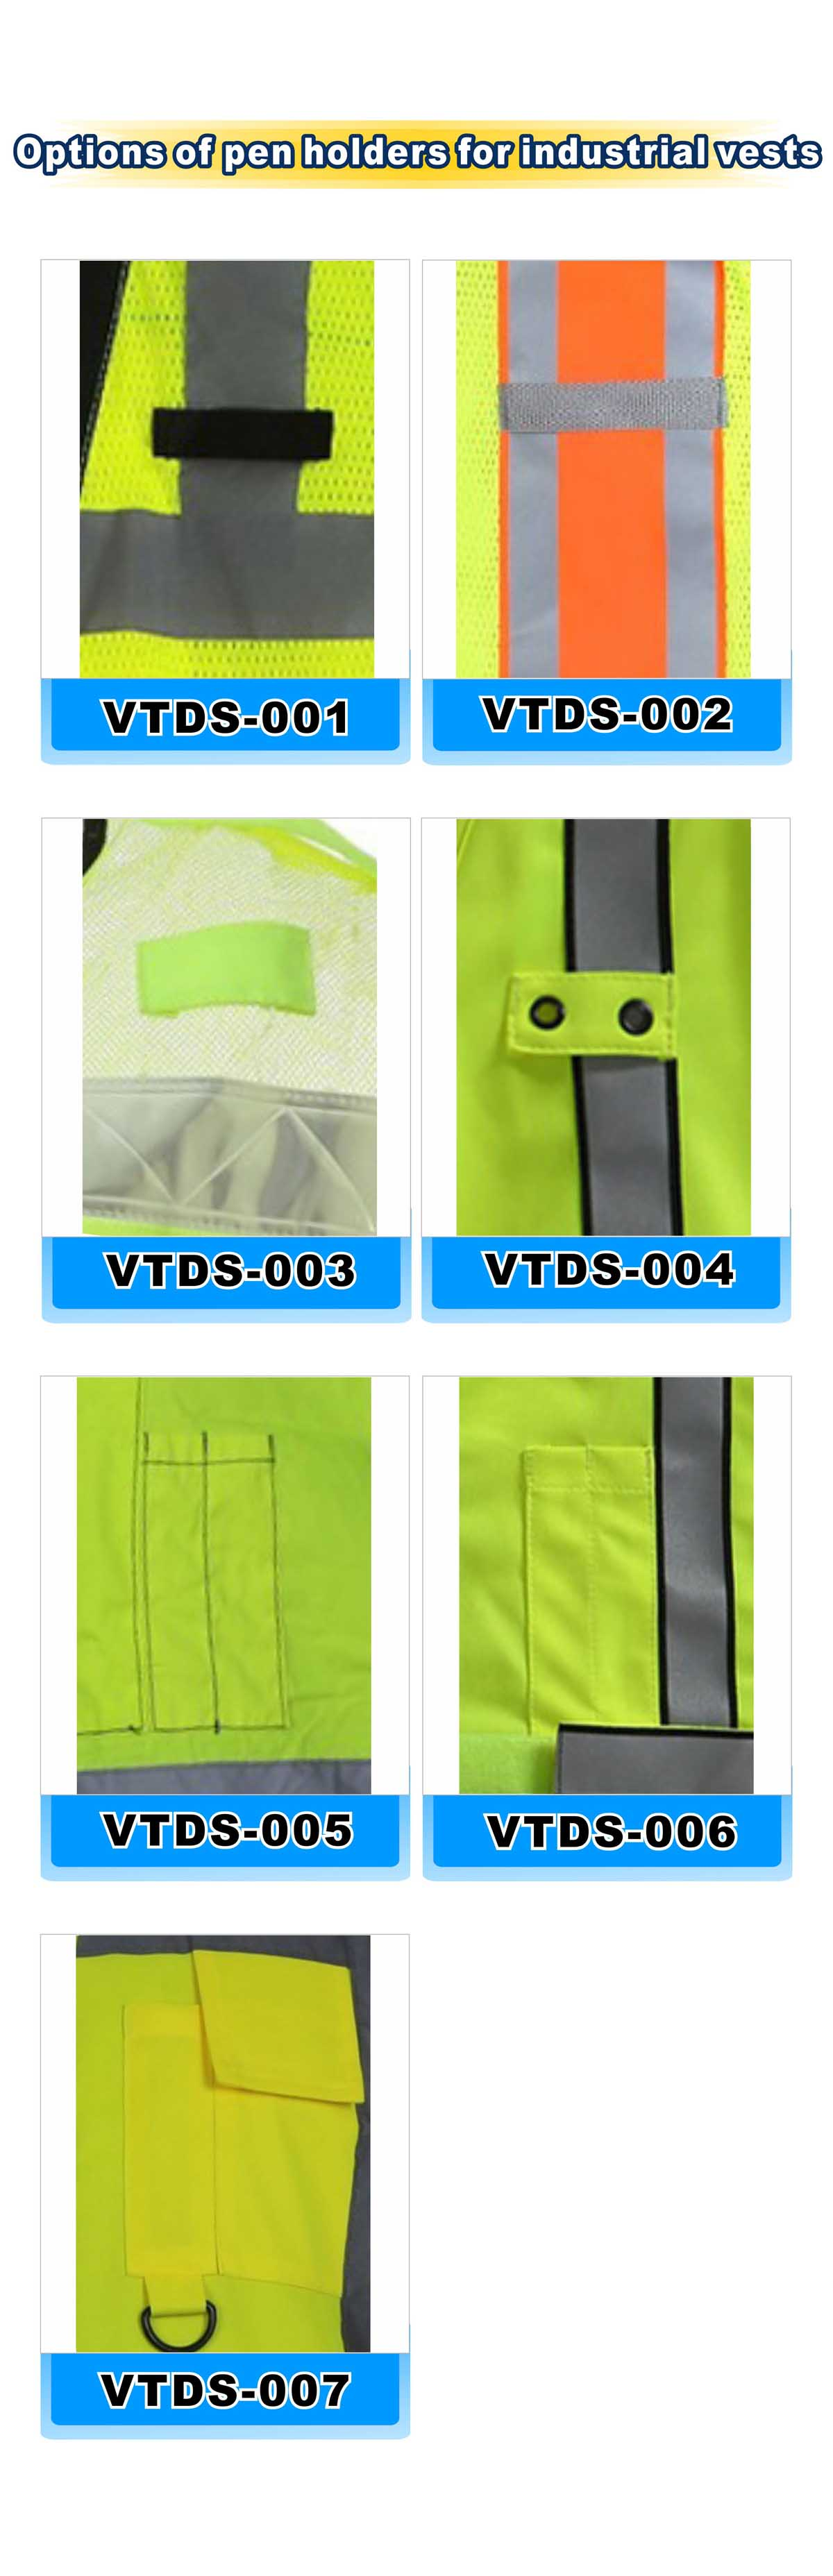 Option of pen holders for industrial vests